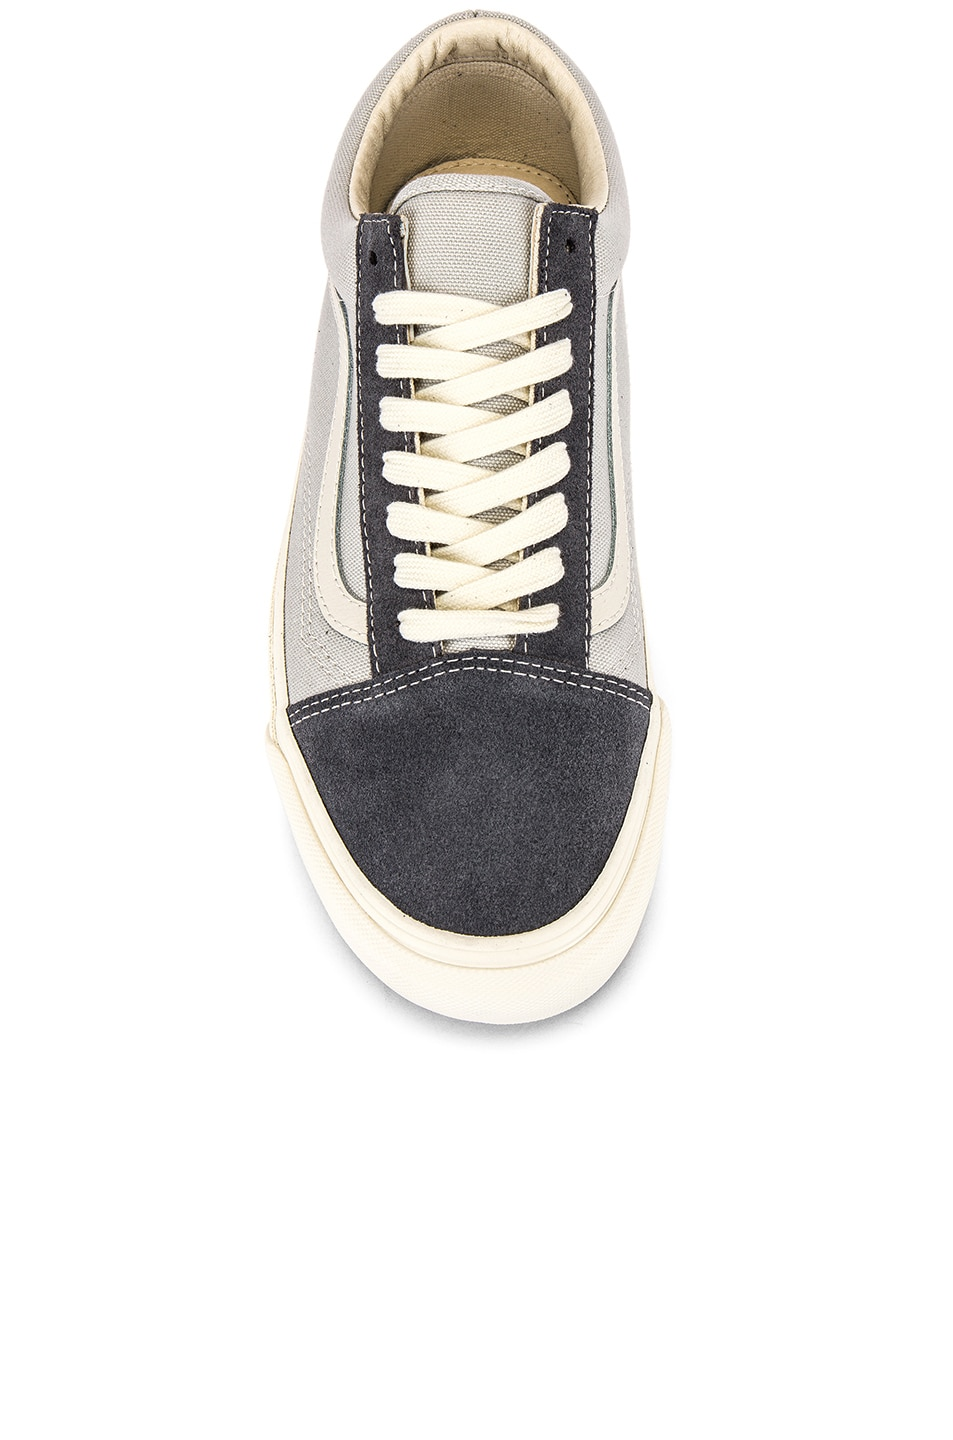 Image 4 of Vans Vault OG Style Old Skool LX in Pearl Gray & Multi